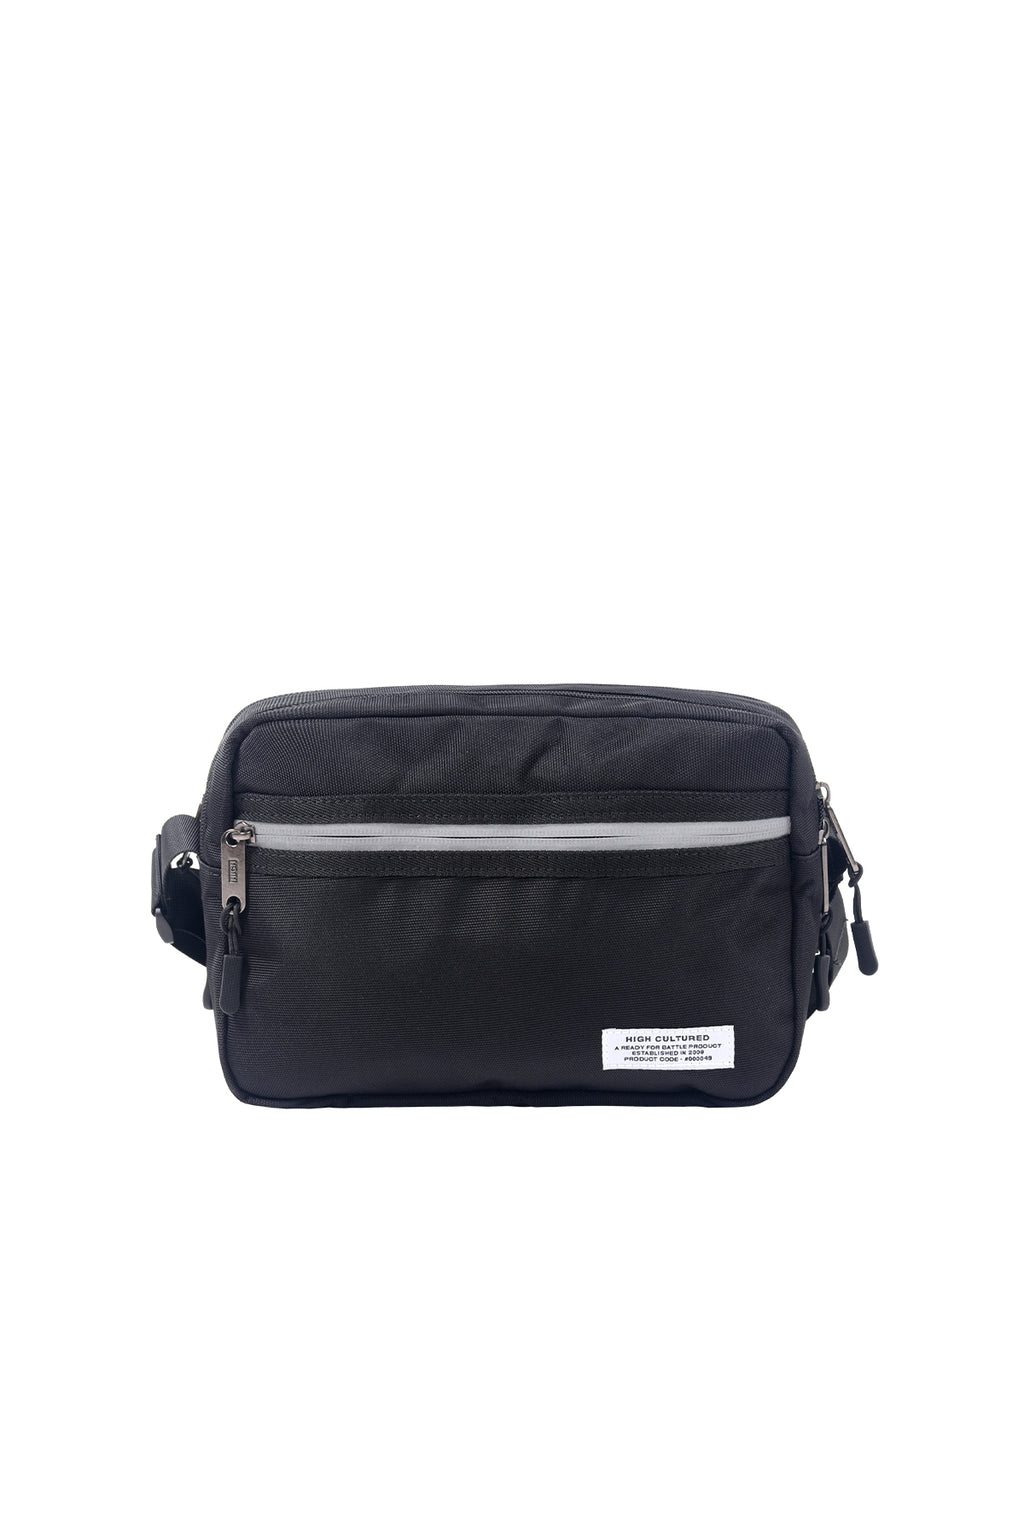 REFLECTIVE STRIPES MEDIUM ESSENTIAL BAG - 31